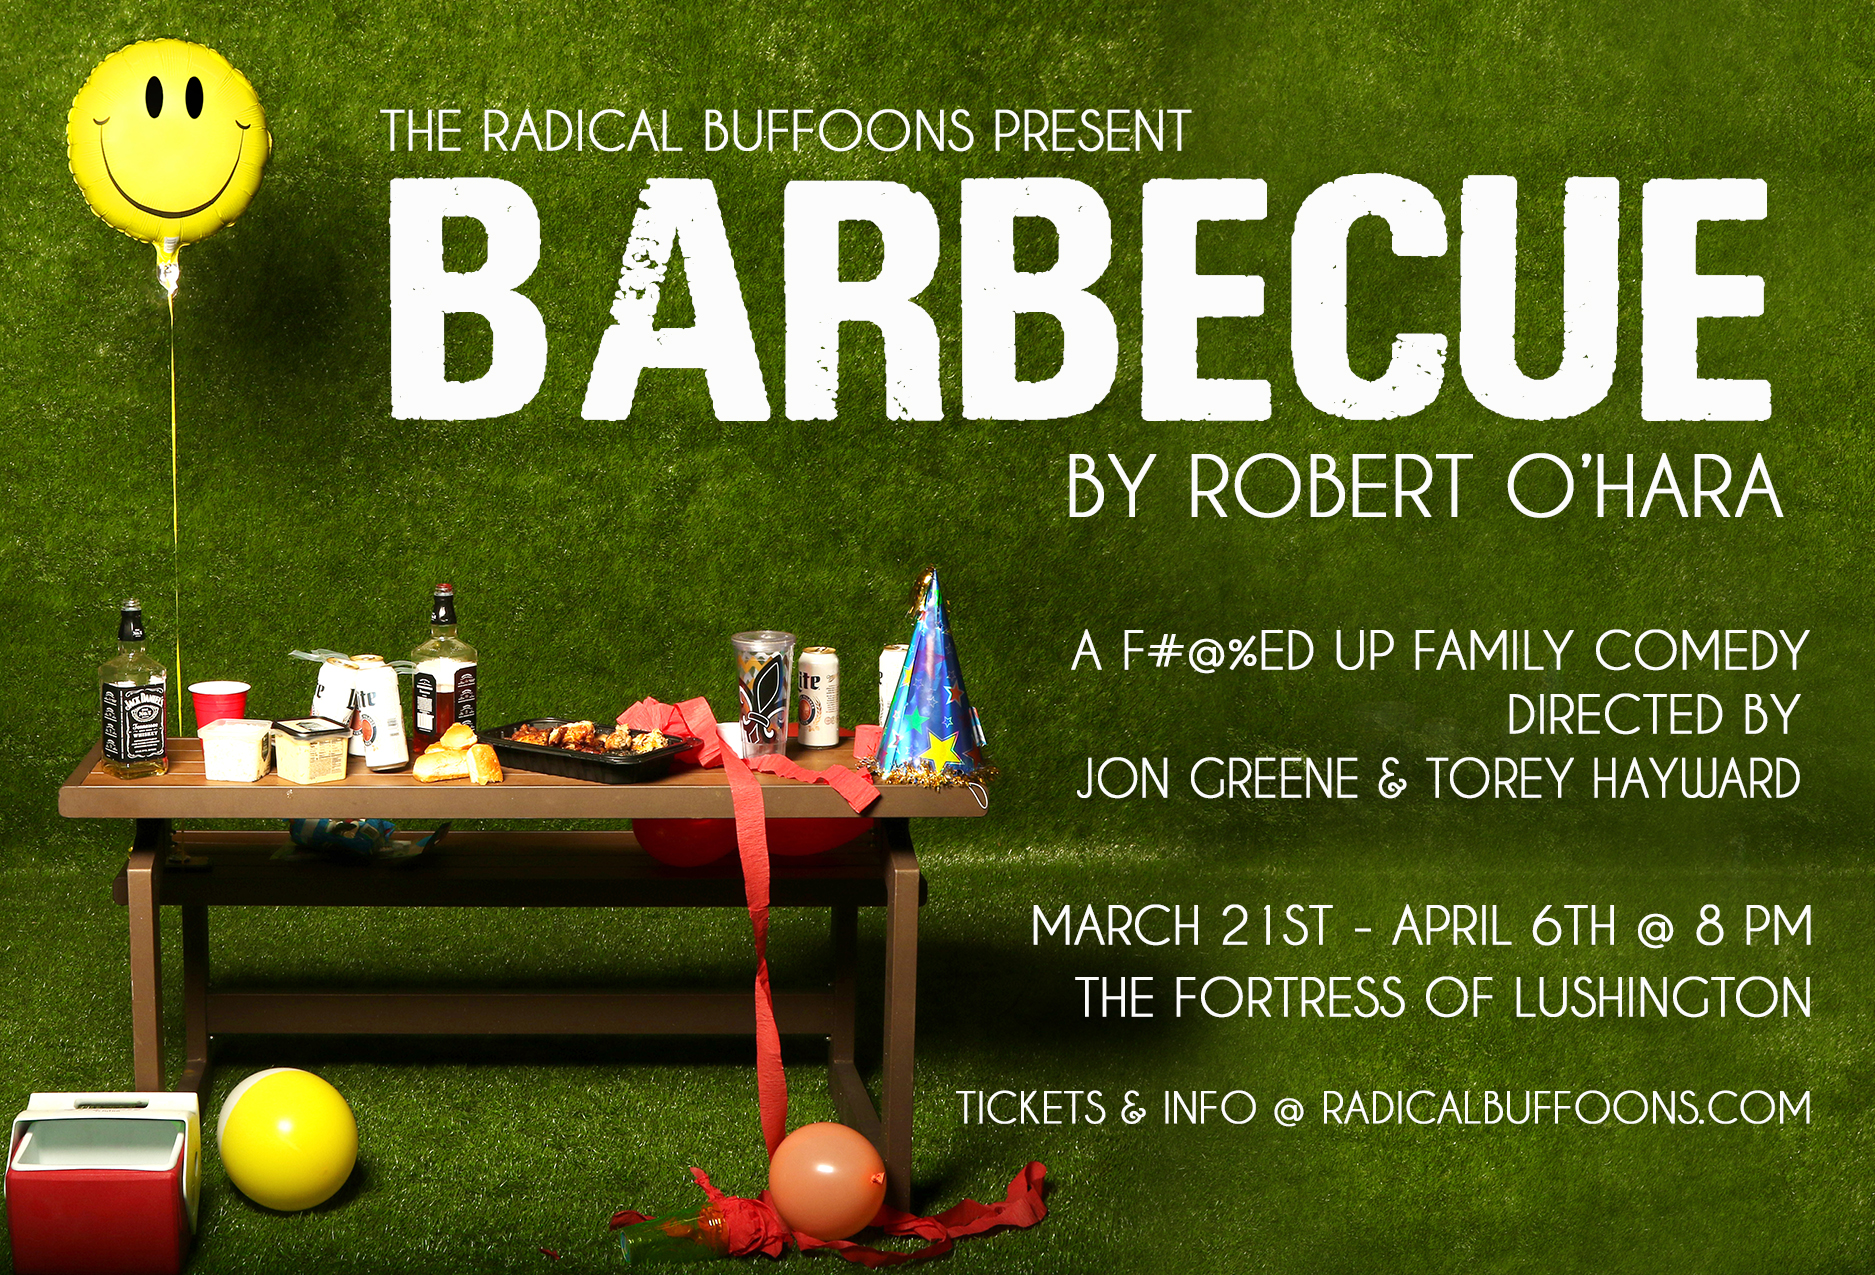 Cooking Up Satire and Plot Twists with <em>Barbecue</em>, the New Play by the Radical Buffoons